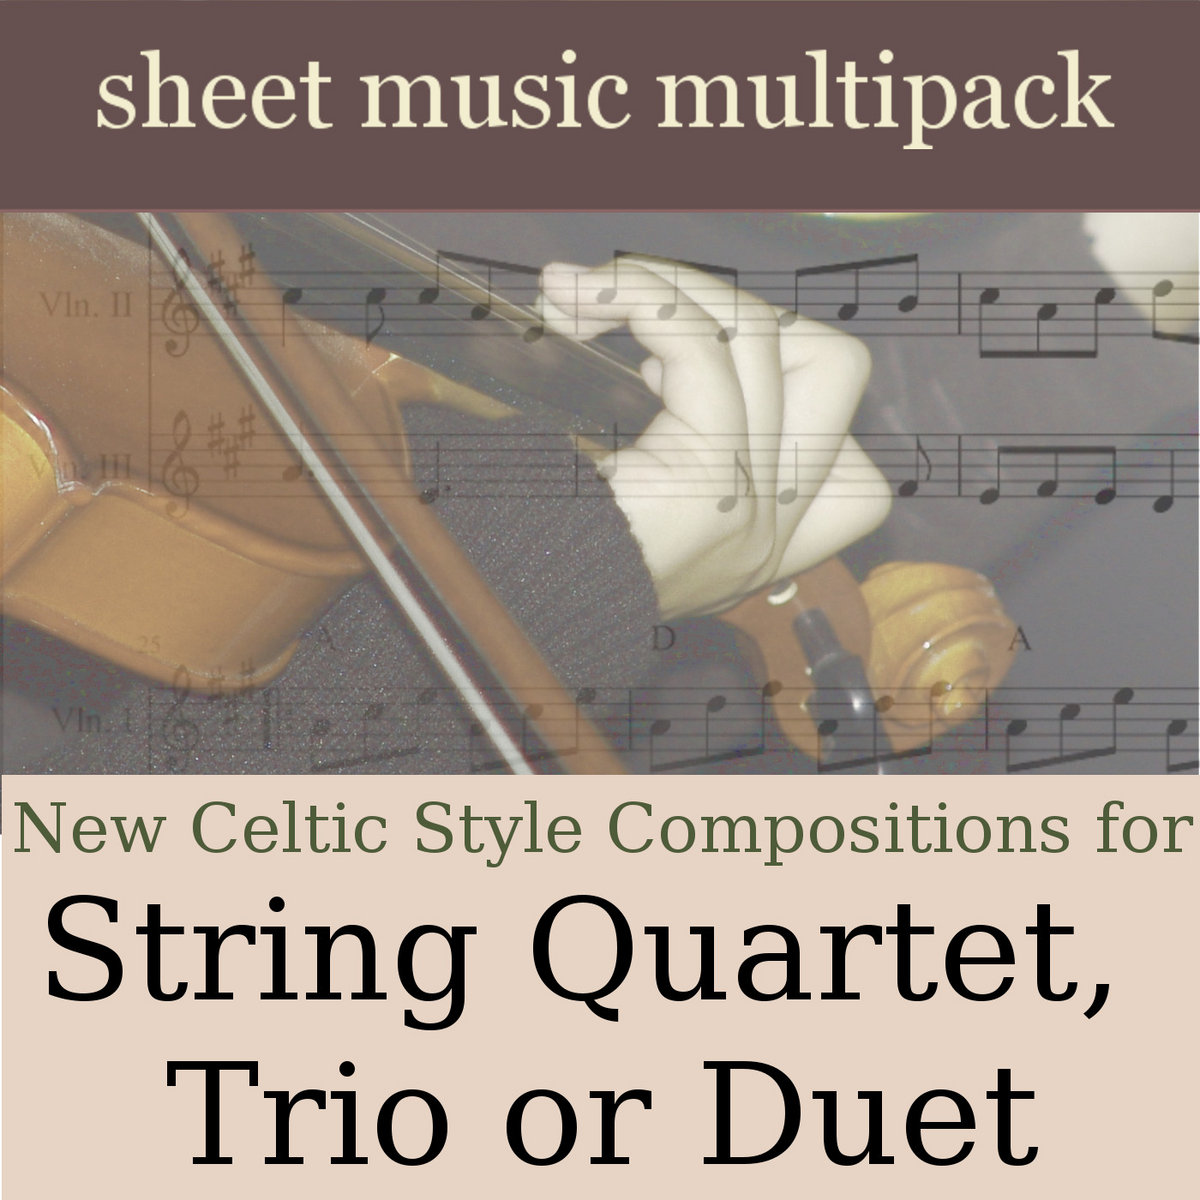 New Celtic Style String Duets, Trios or Quartets - Sheet